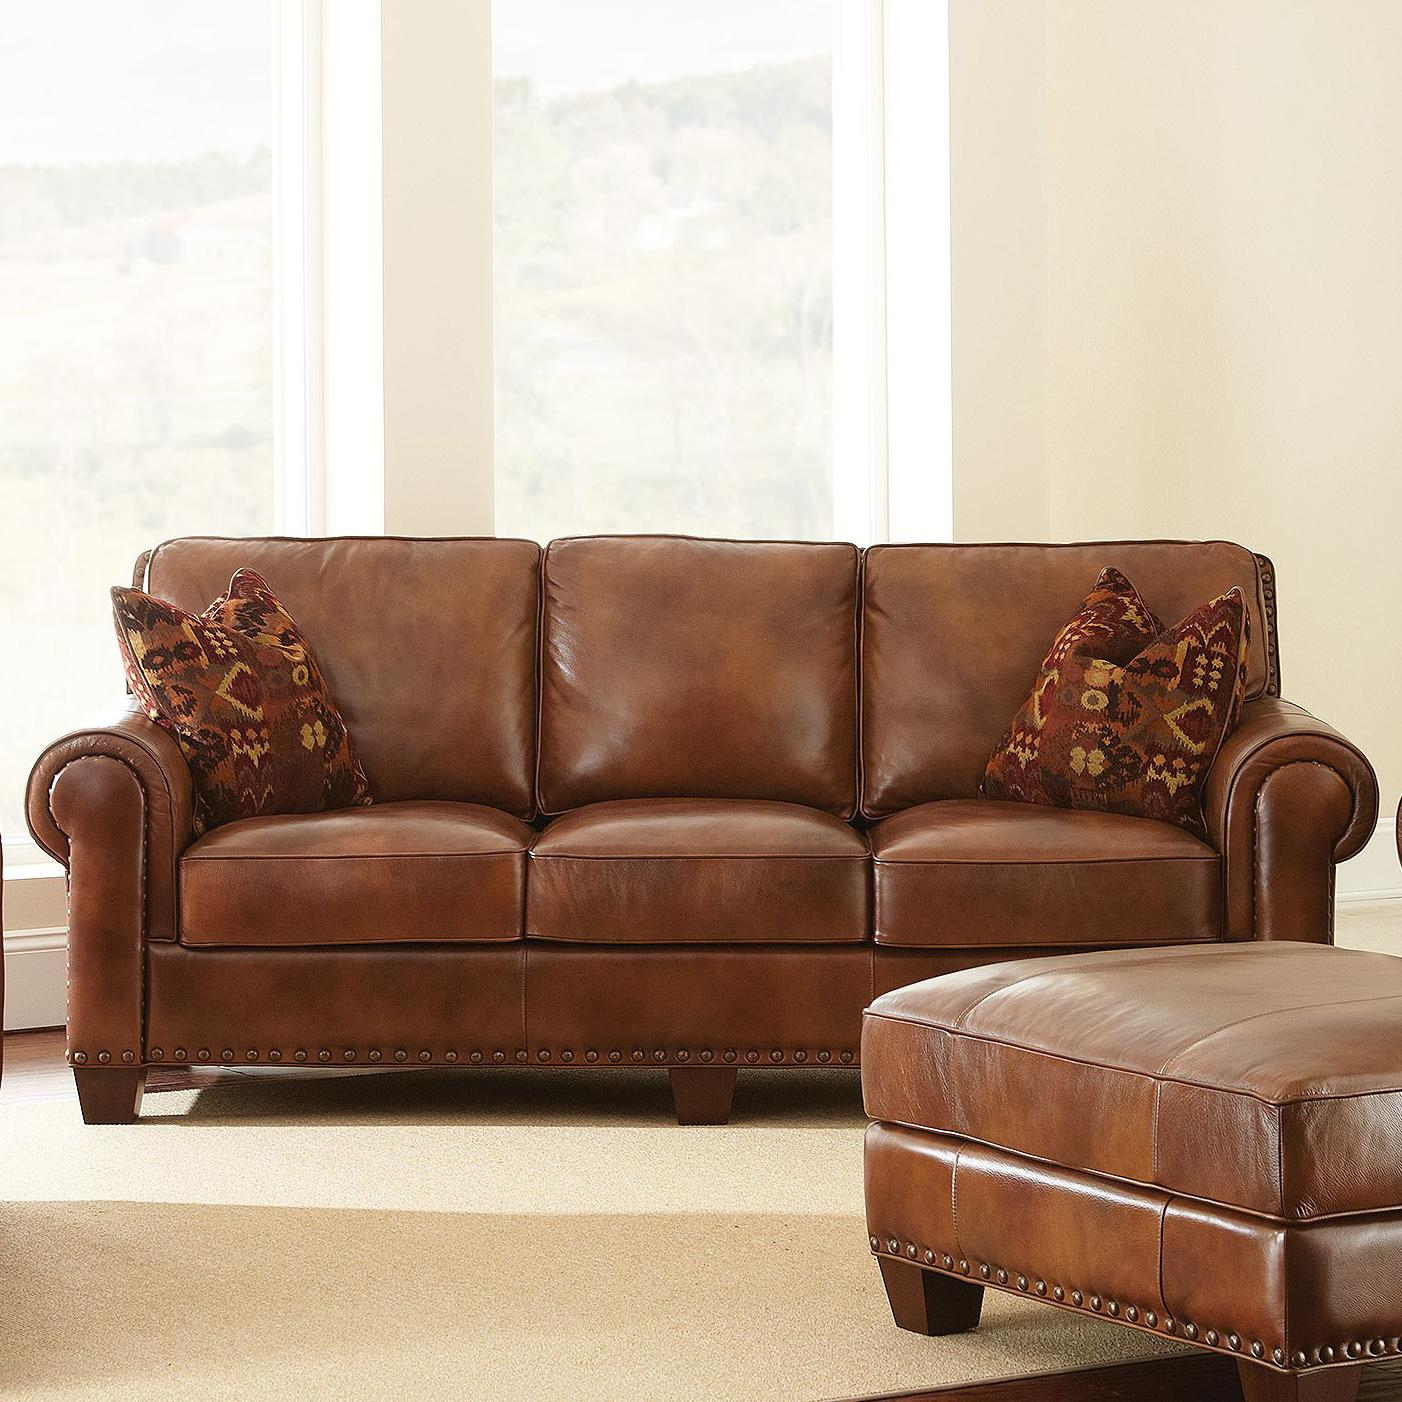 Steve silver silverado traditional sofa with nailhead trim for Traditional sofas and loveseats